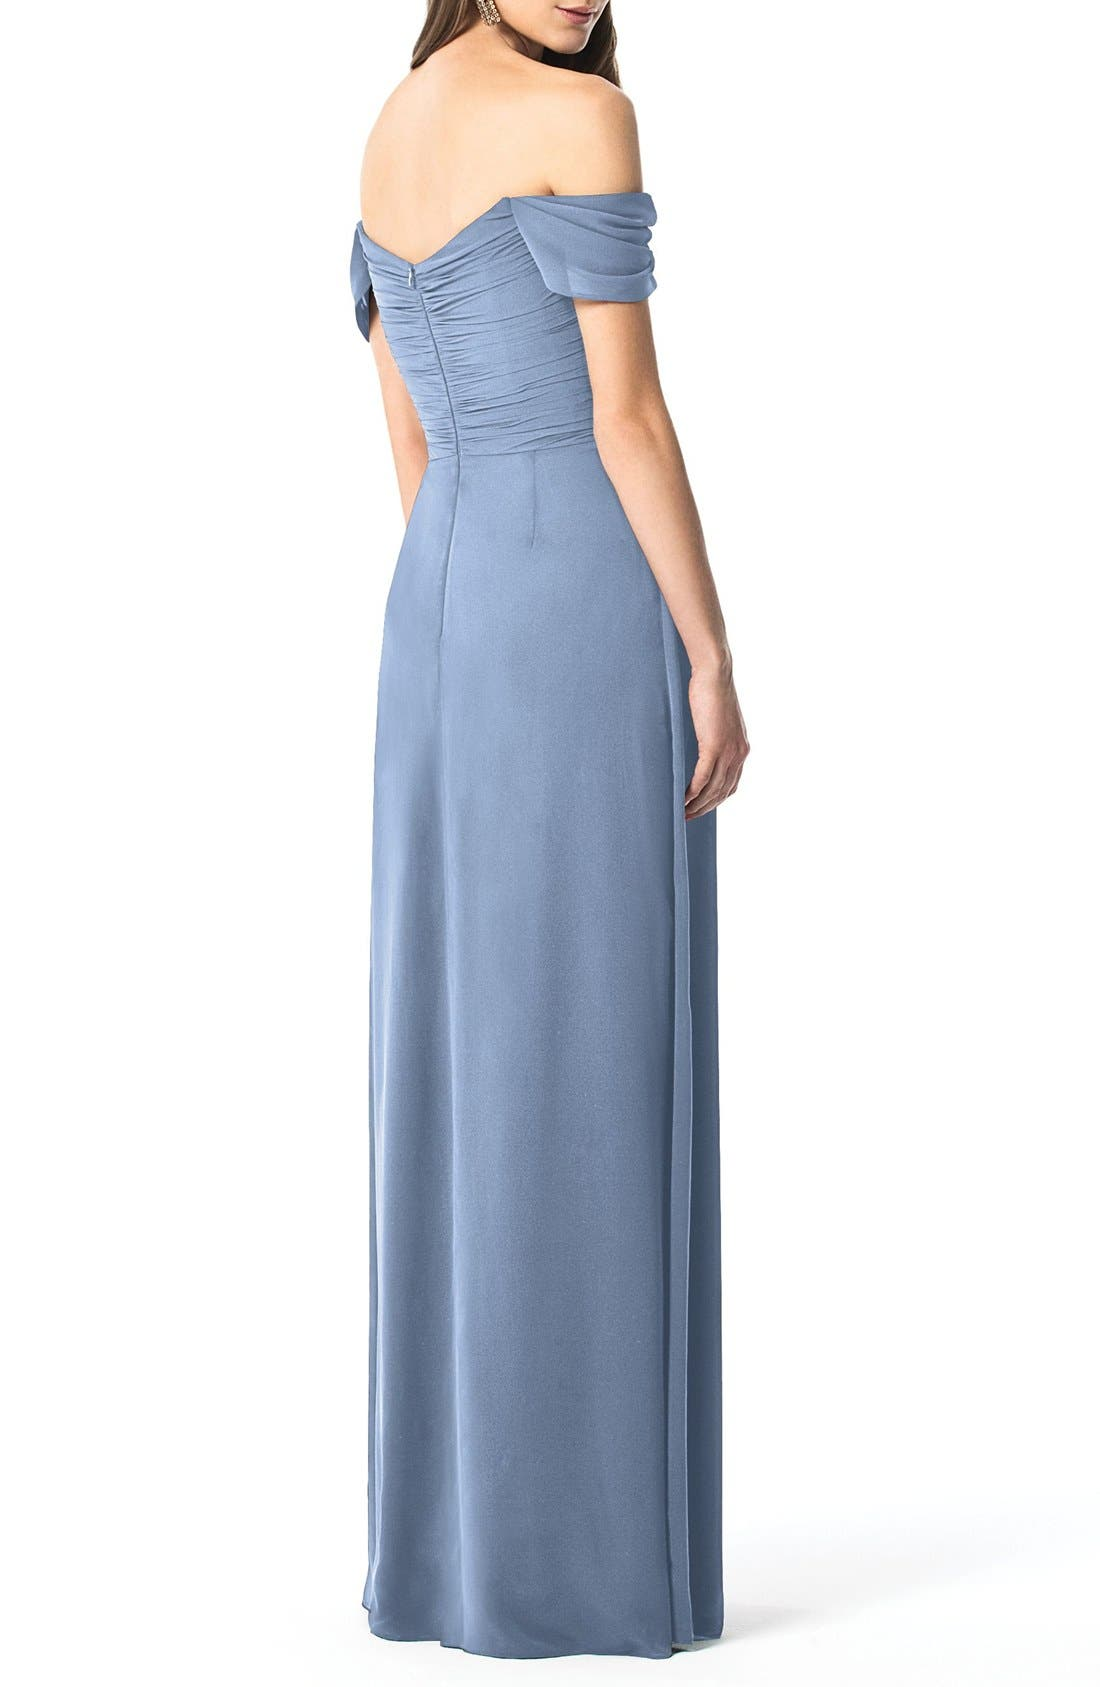 Short Sleeve Bridesmaid Dresses | Nordstrom